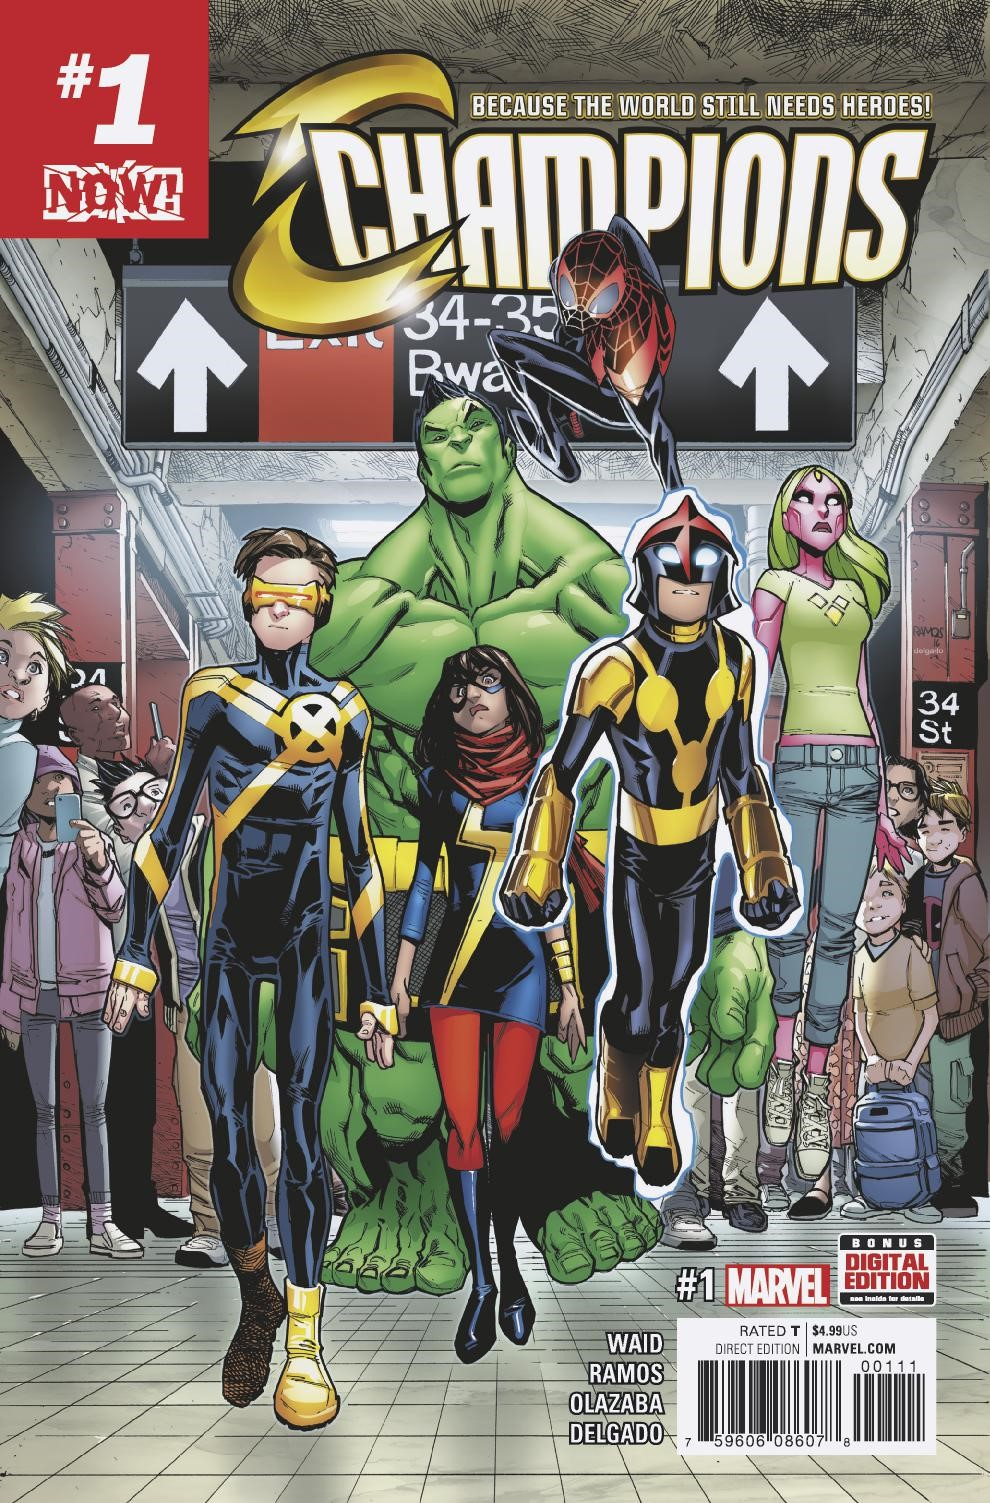 They're Here to Change the World – Watch a Special Trailer for CHAMPIONS #2!